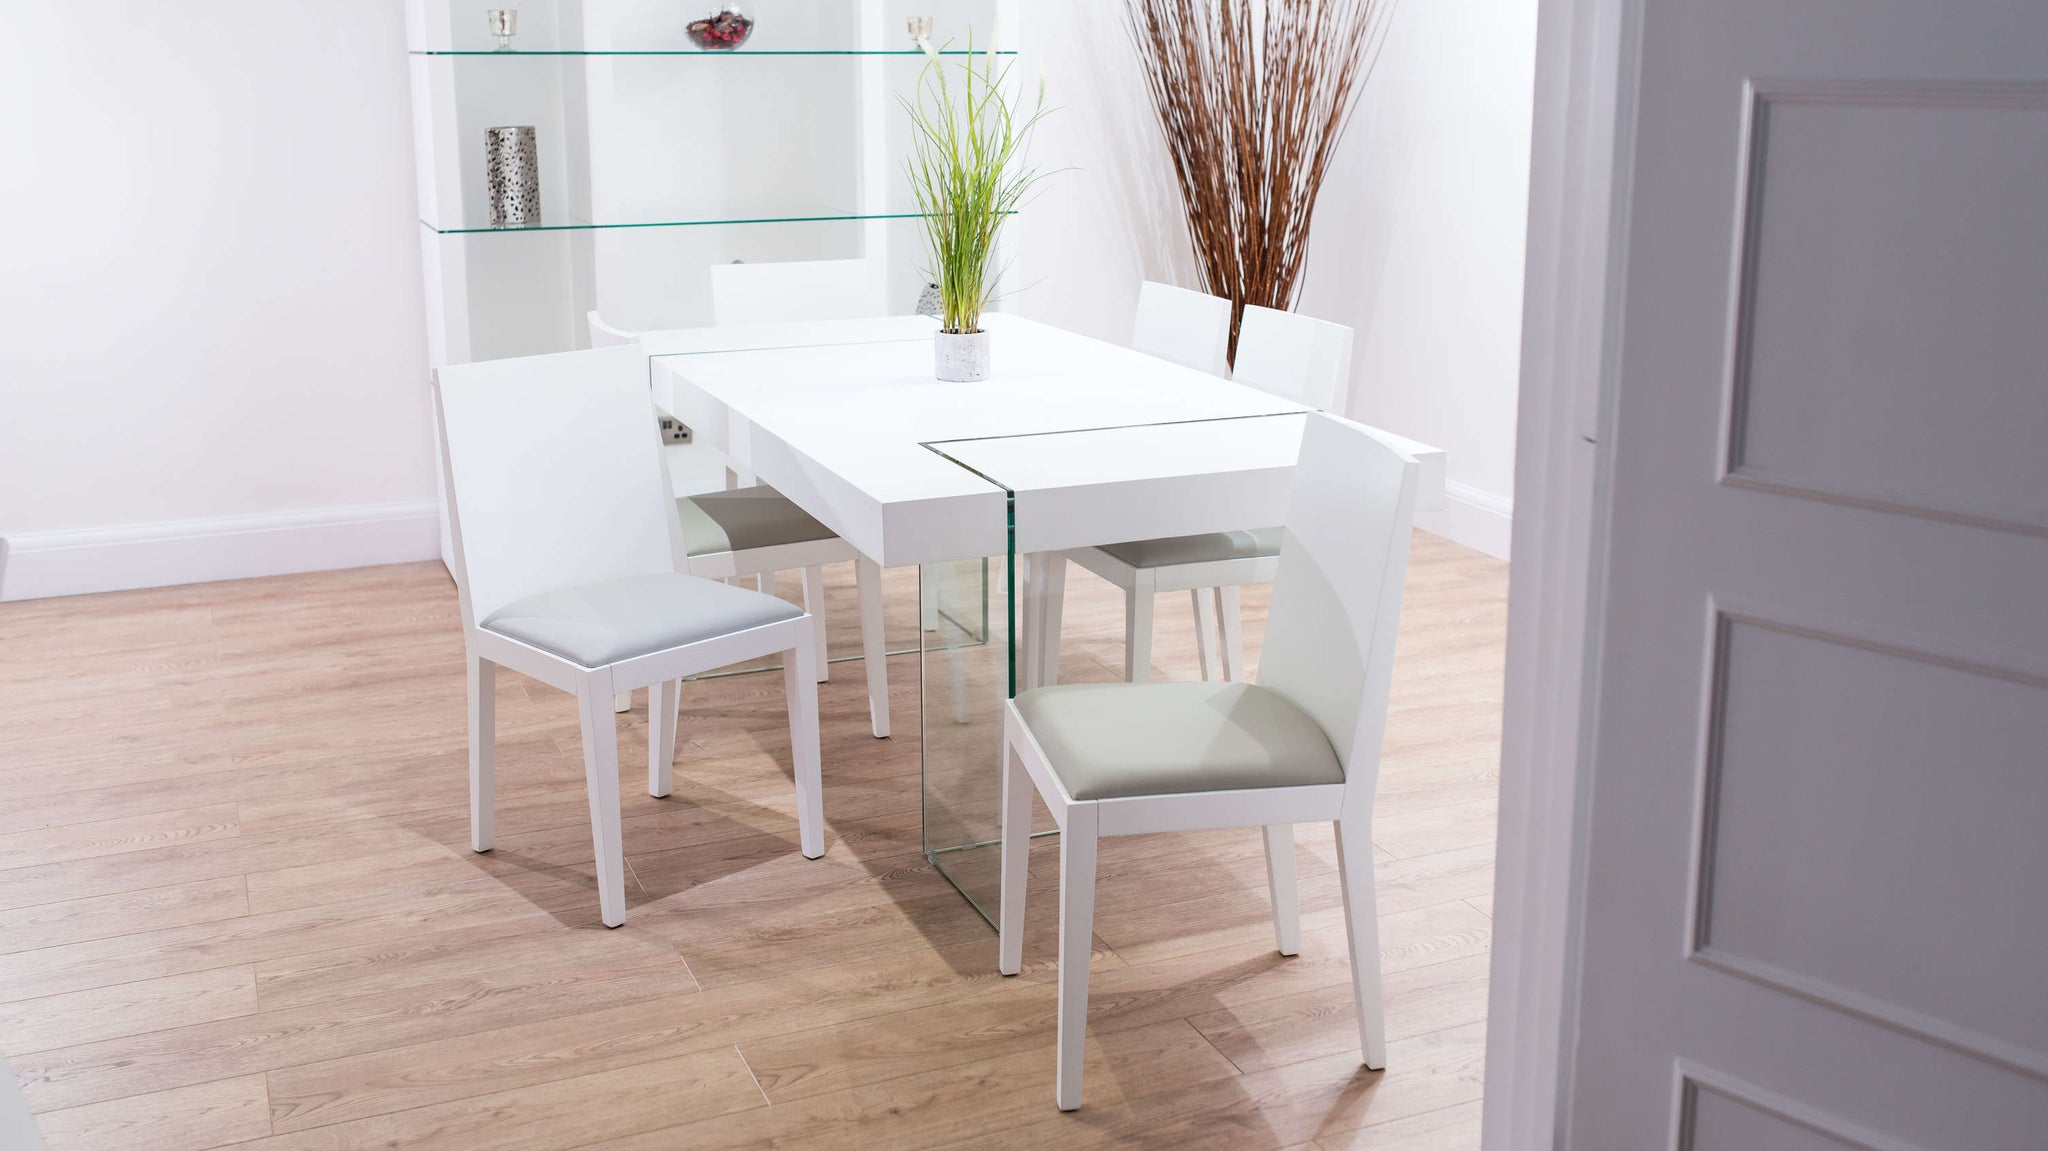 4-6 Seater White and Glass Dining Set